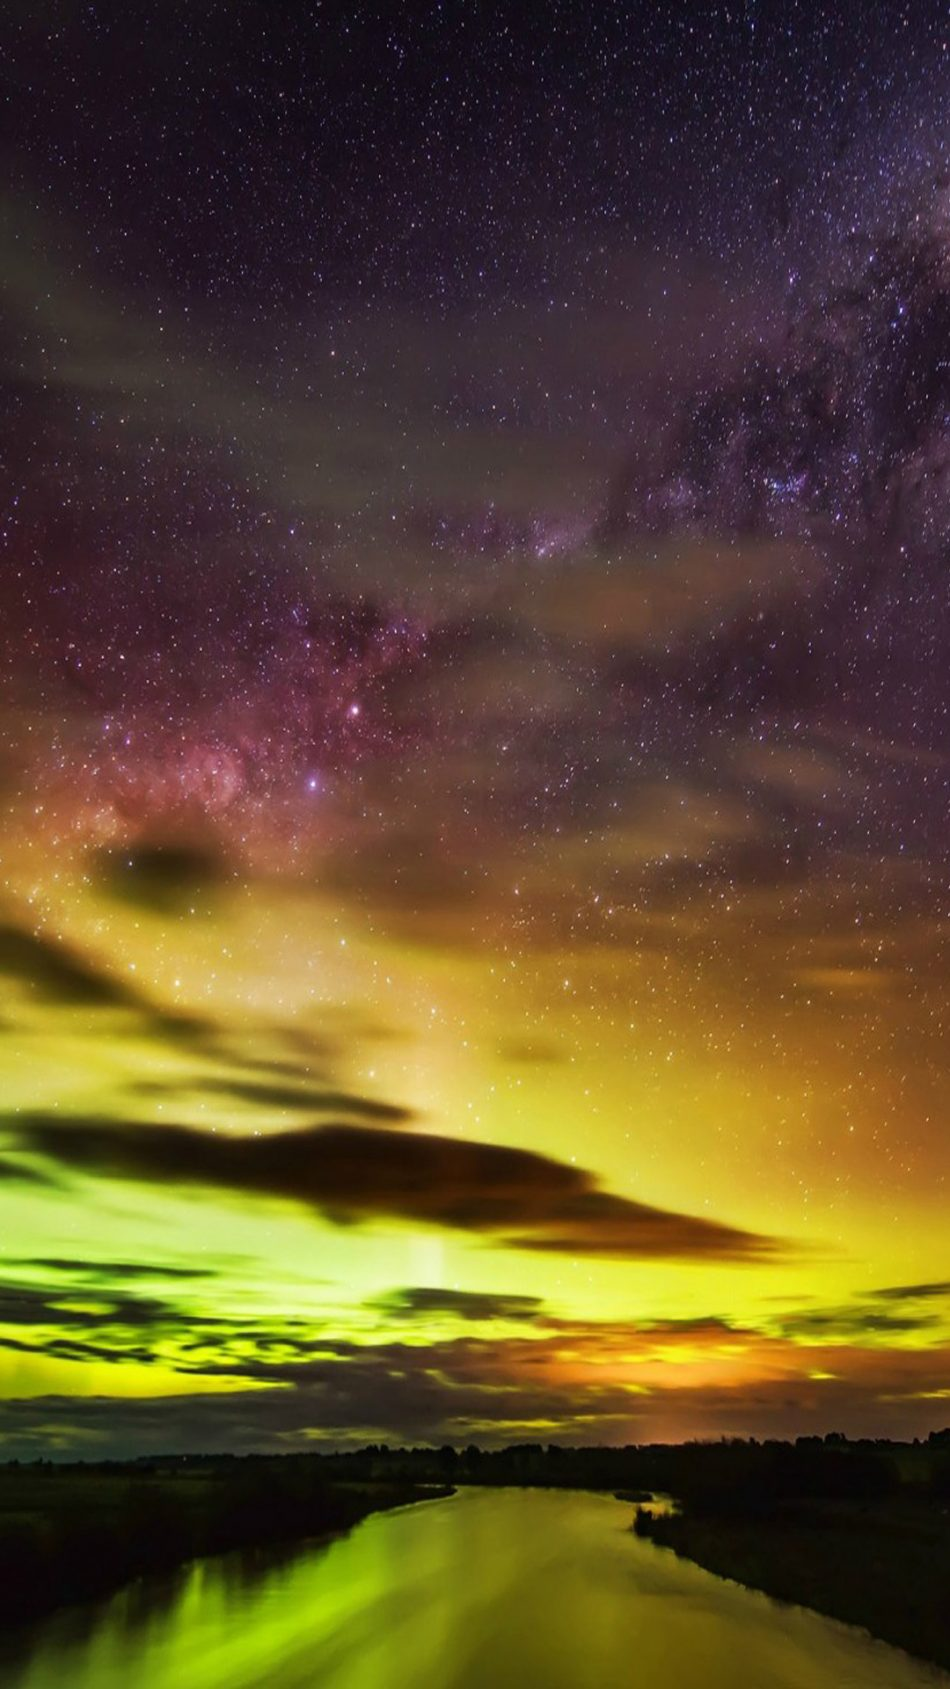 New Zealand Southern Lights Aurora River Night Sky Free 4k Ultra